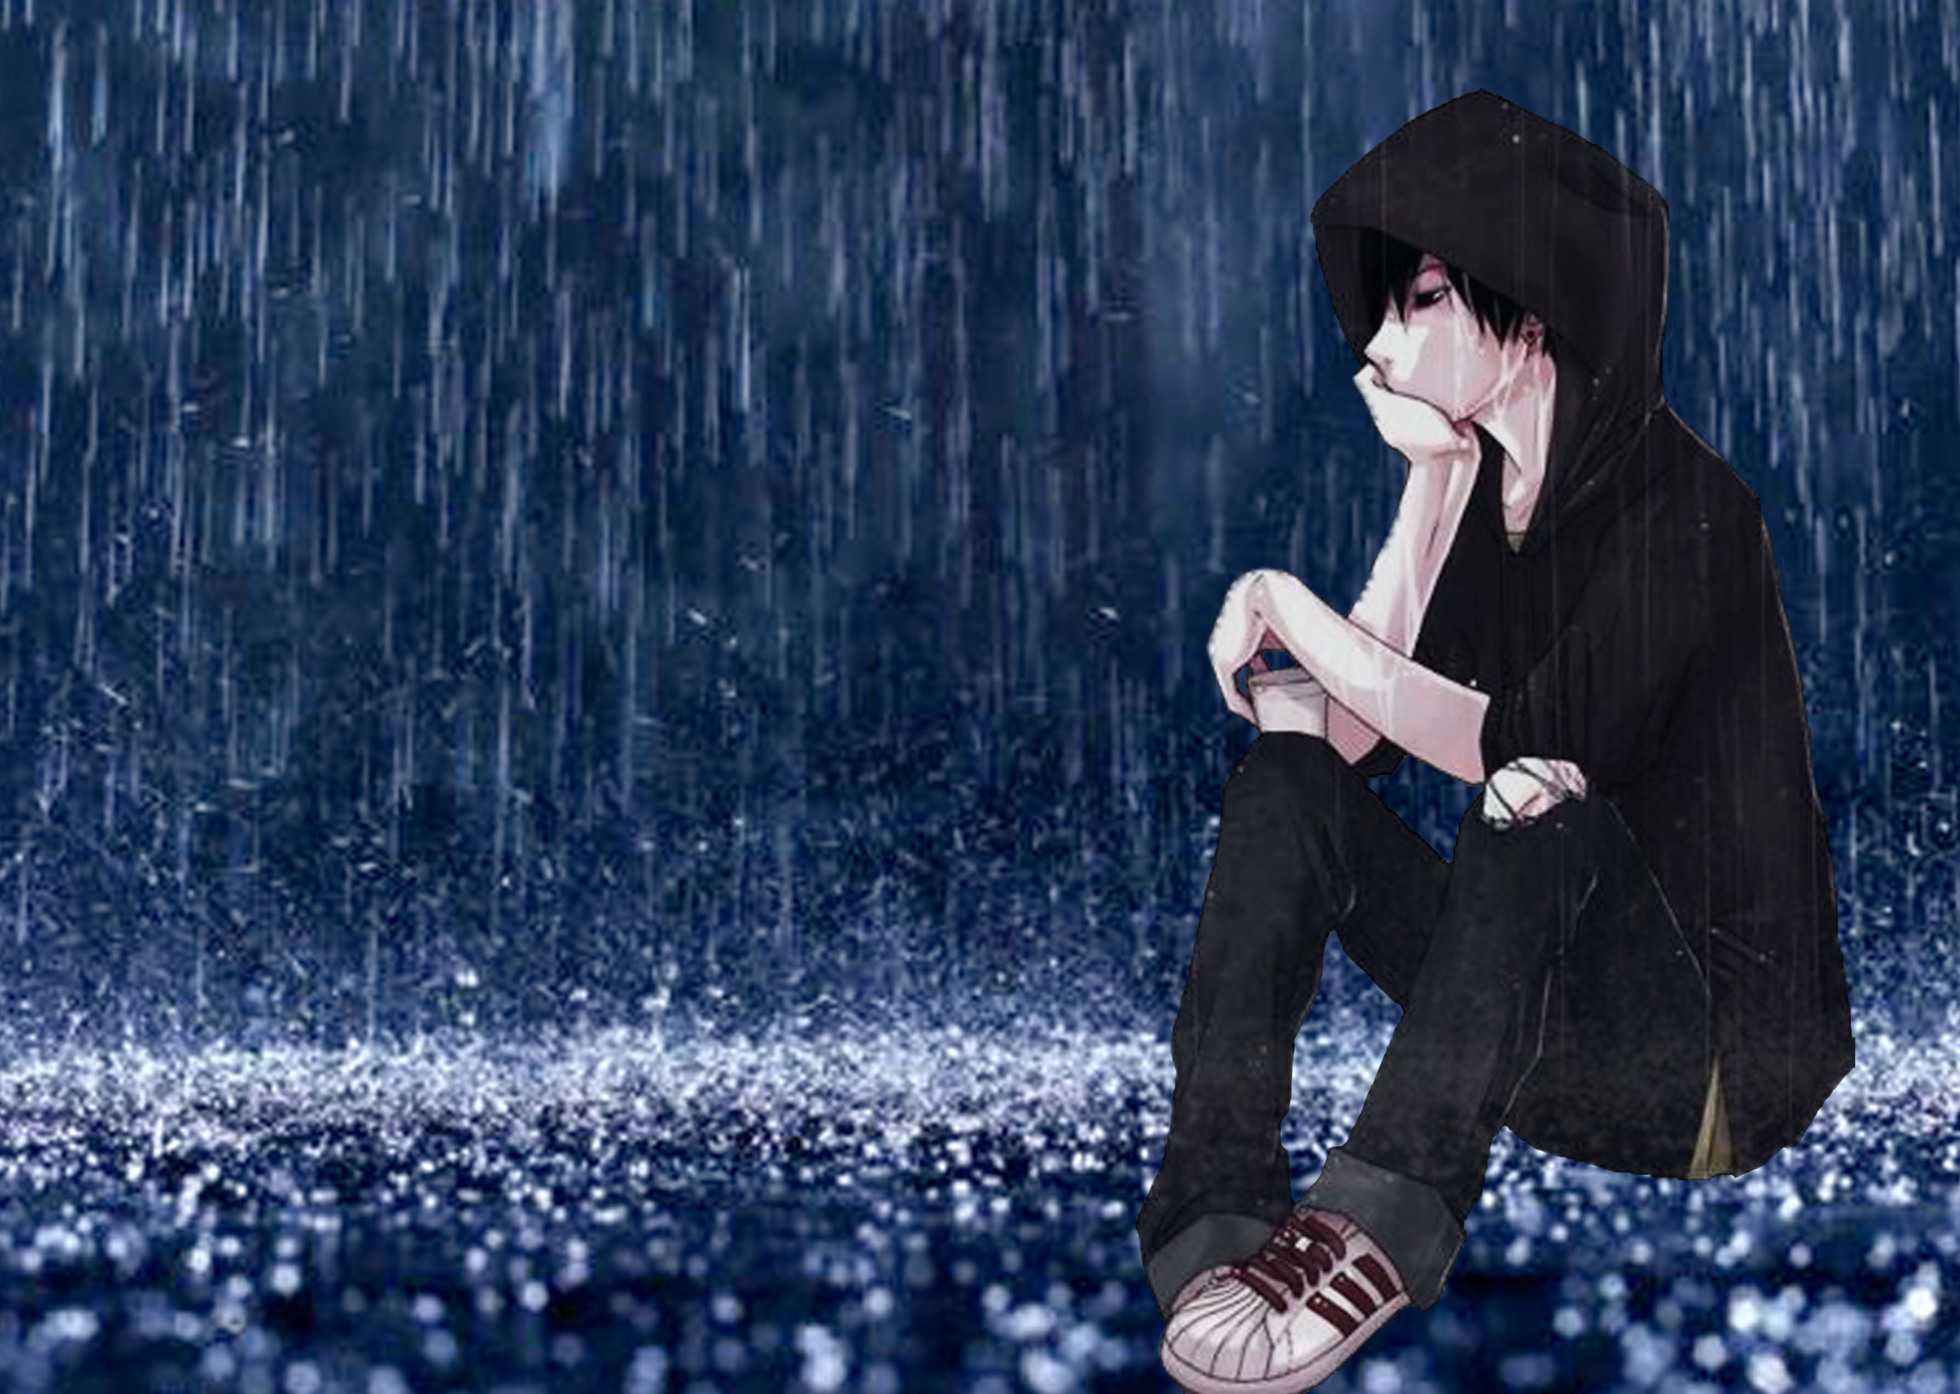 Sad Anime Boy Crying Blood